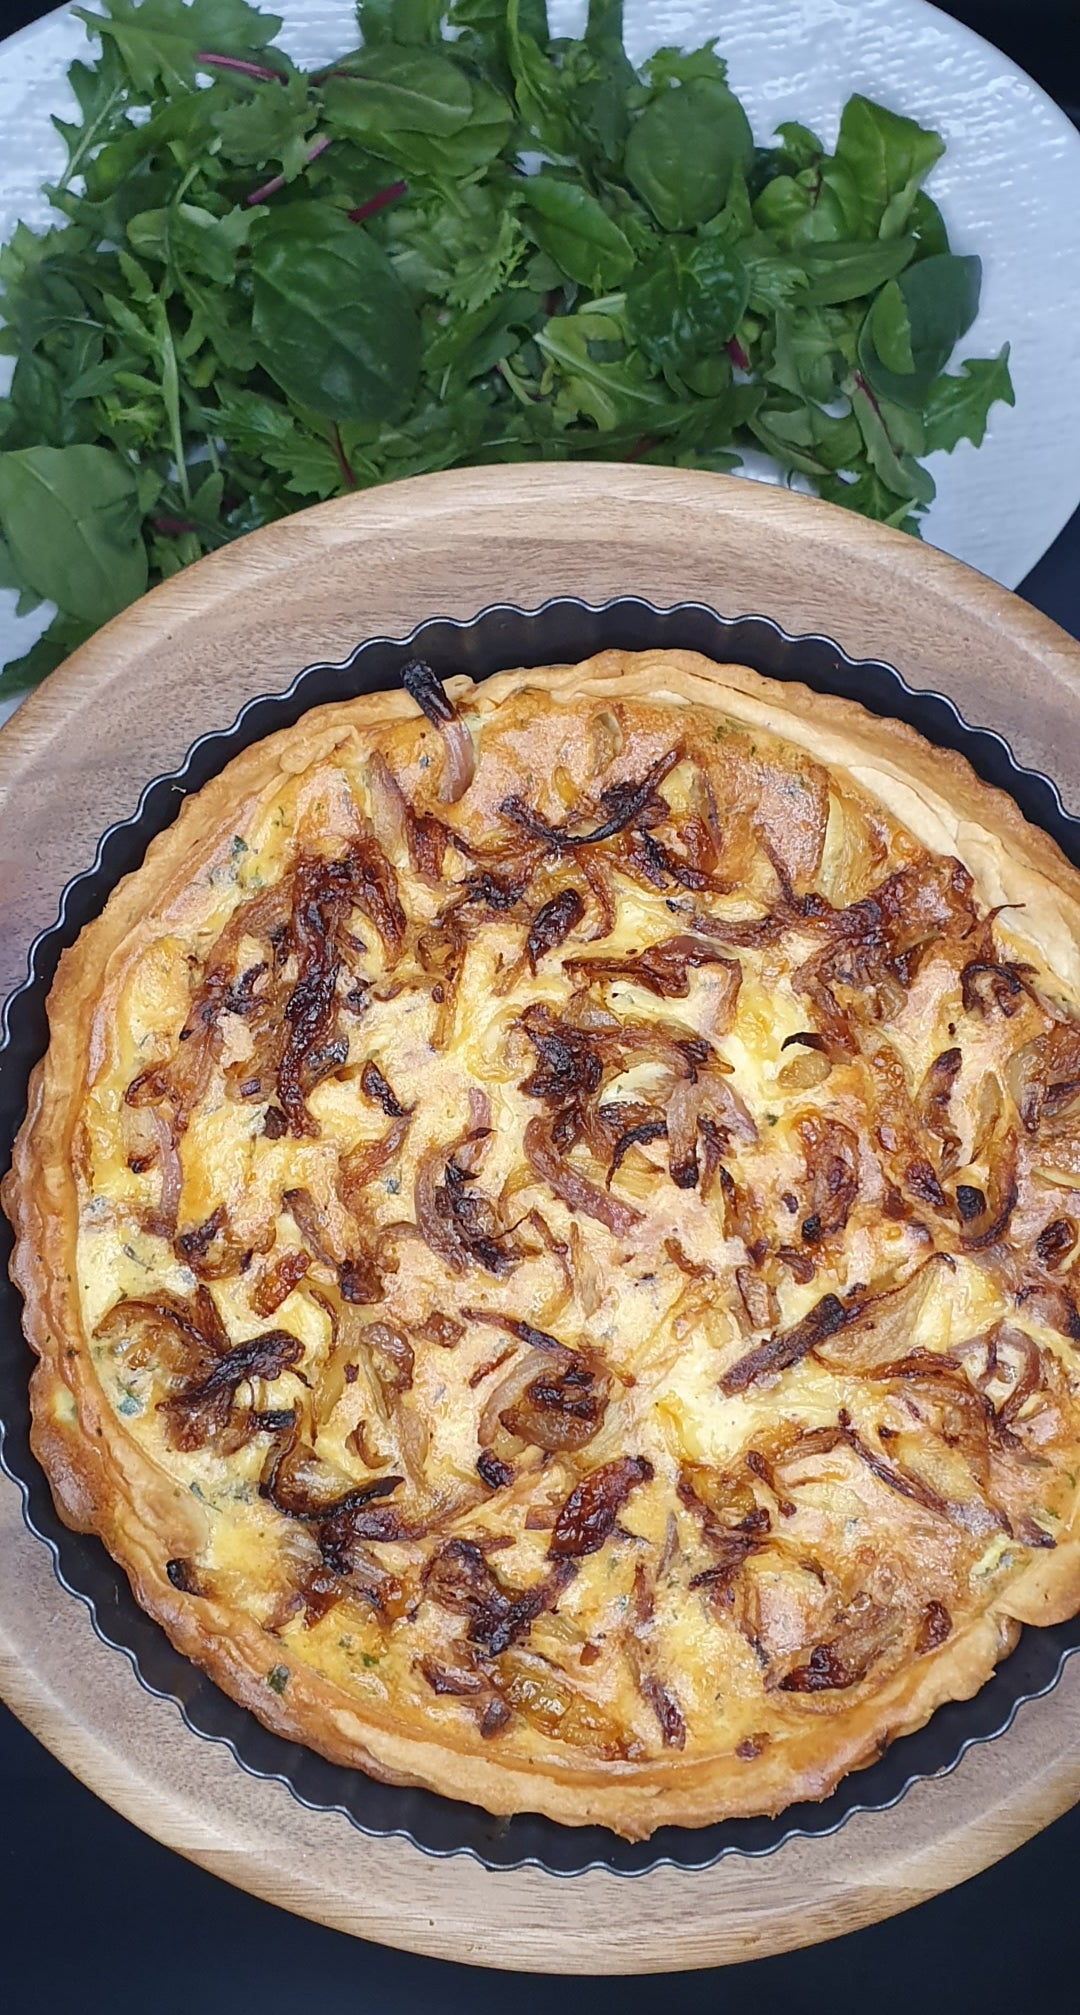 Caramelised Onion Quiche by Kathryn our T2T Food Blogger